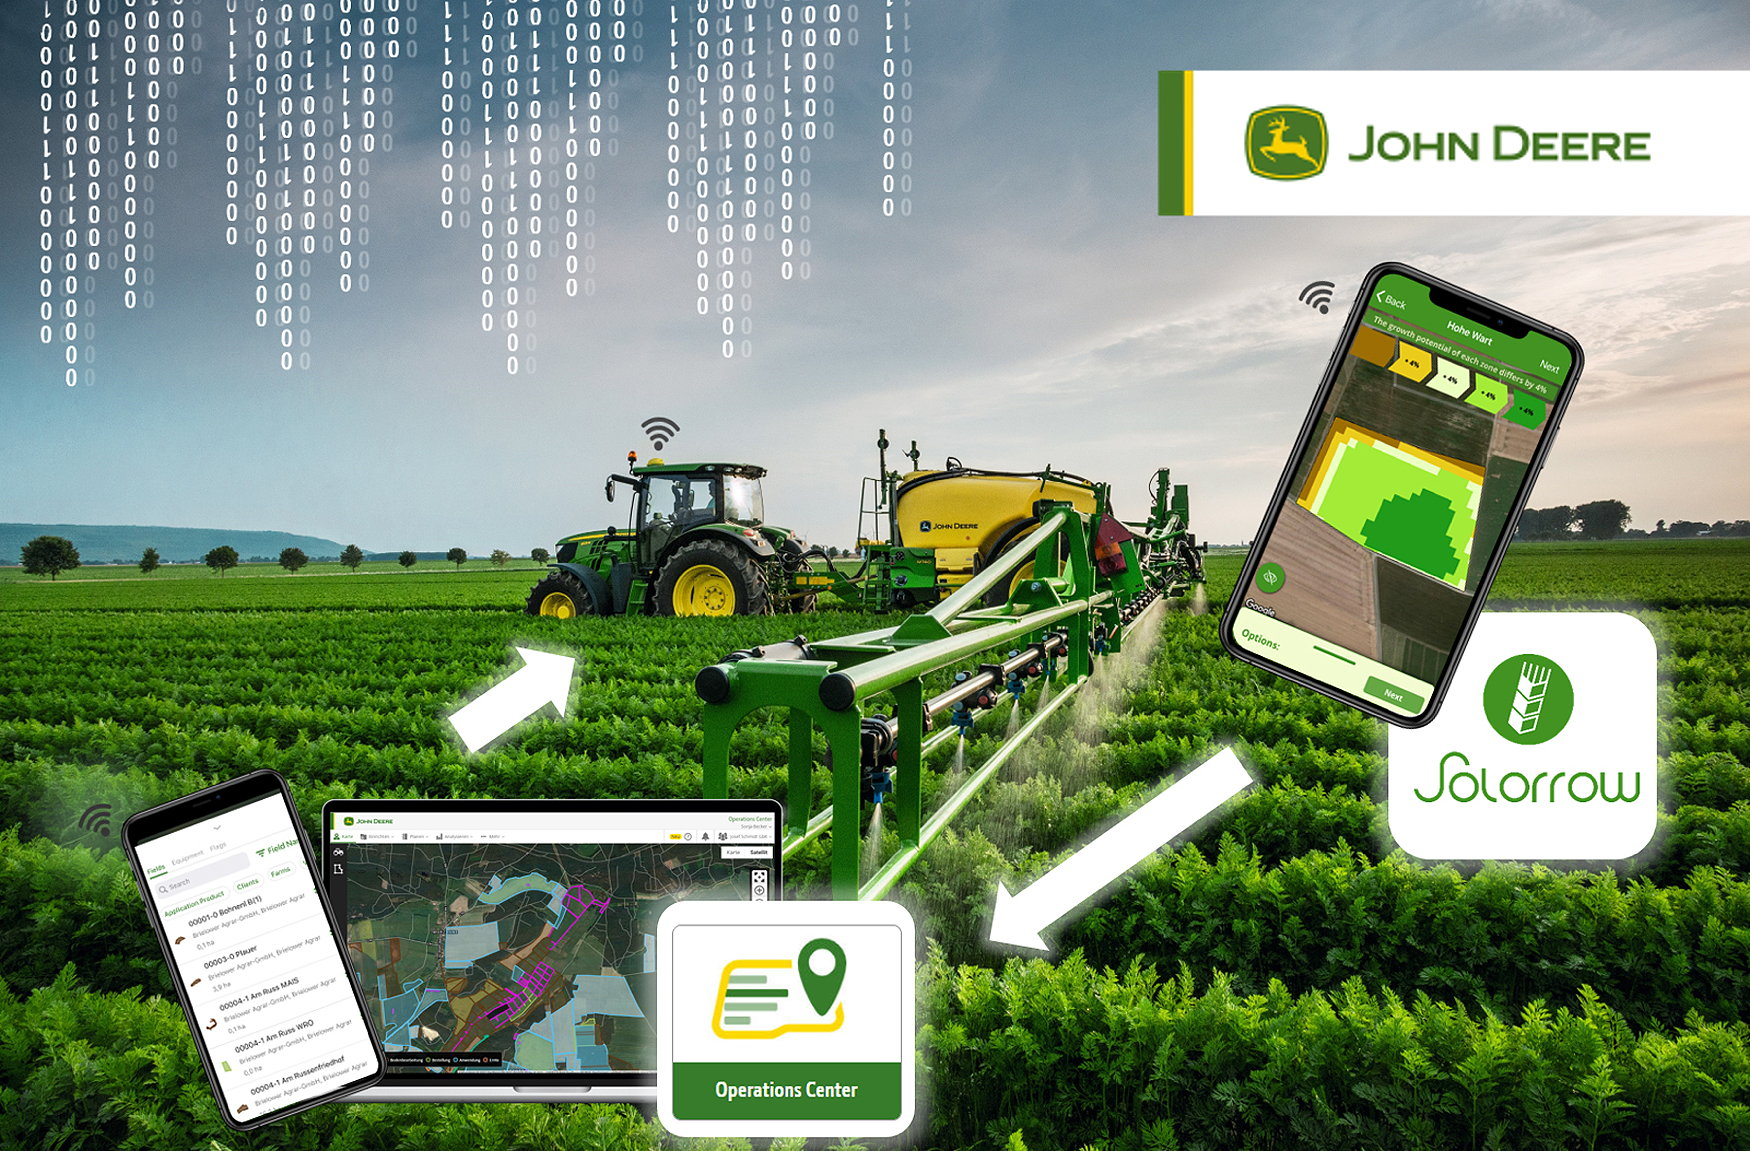 The Solorrow app can now share its application maps with the John Deere Operations Centre.